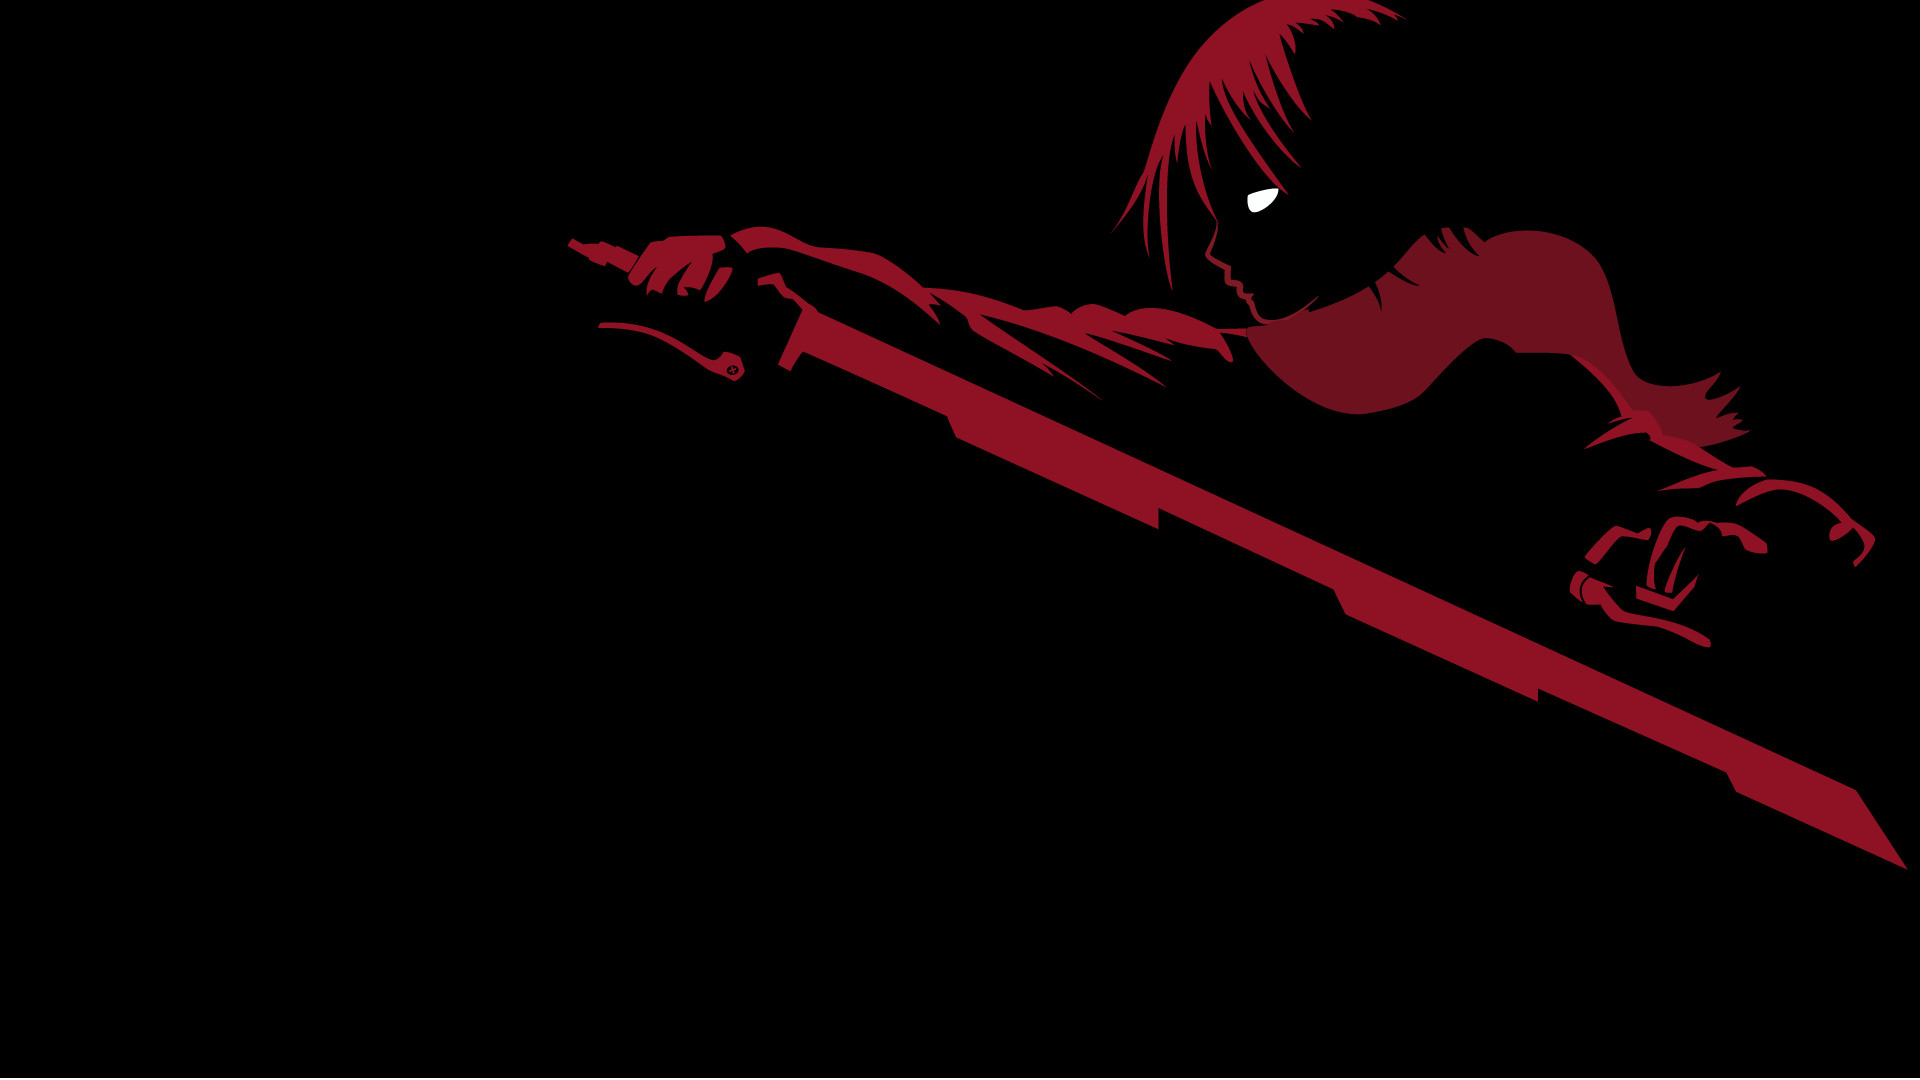 Red and Black Anime Wallpaper (72+ images)